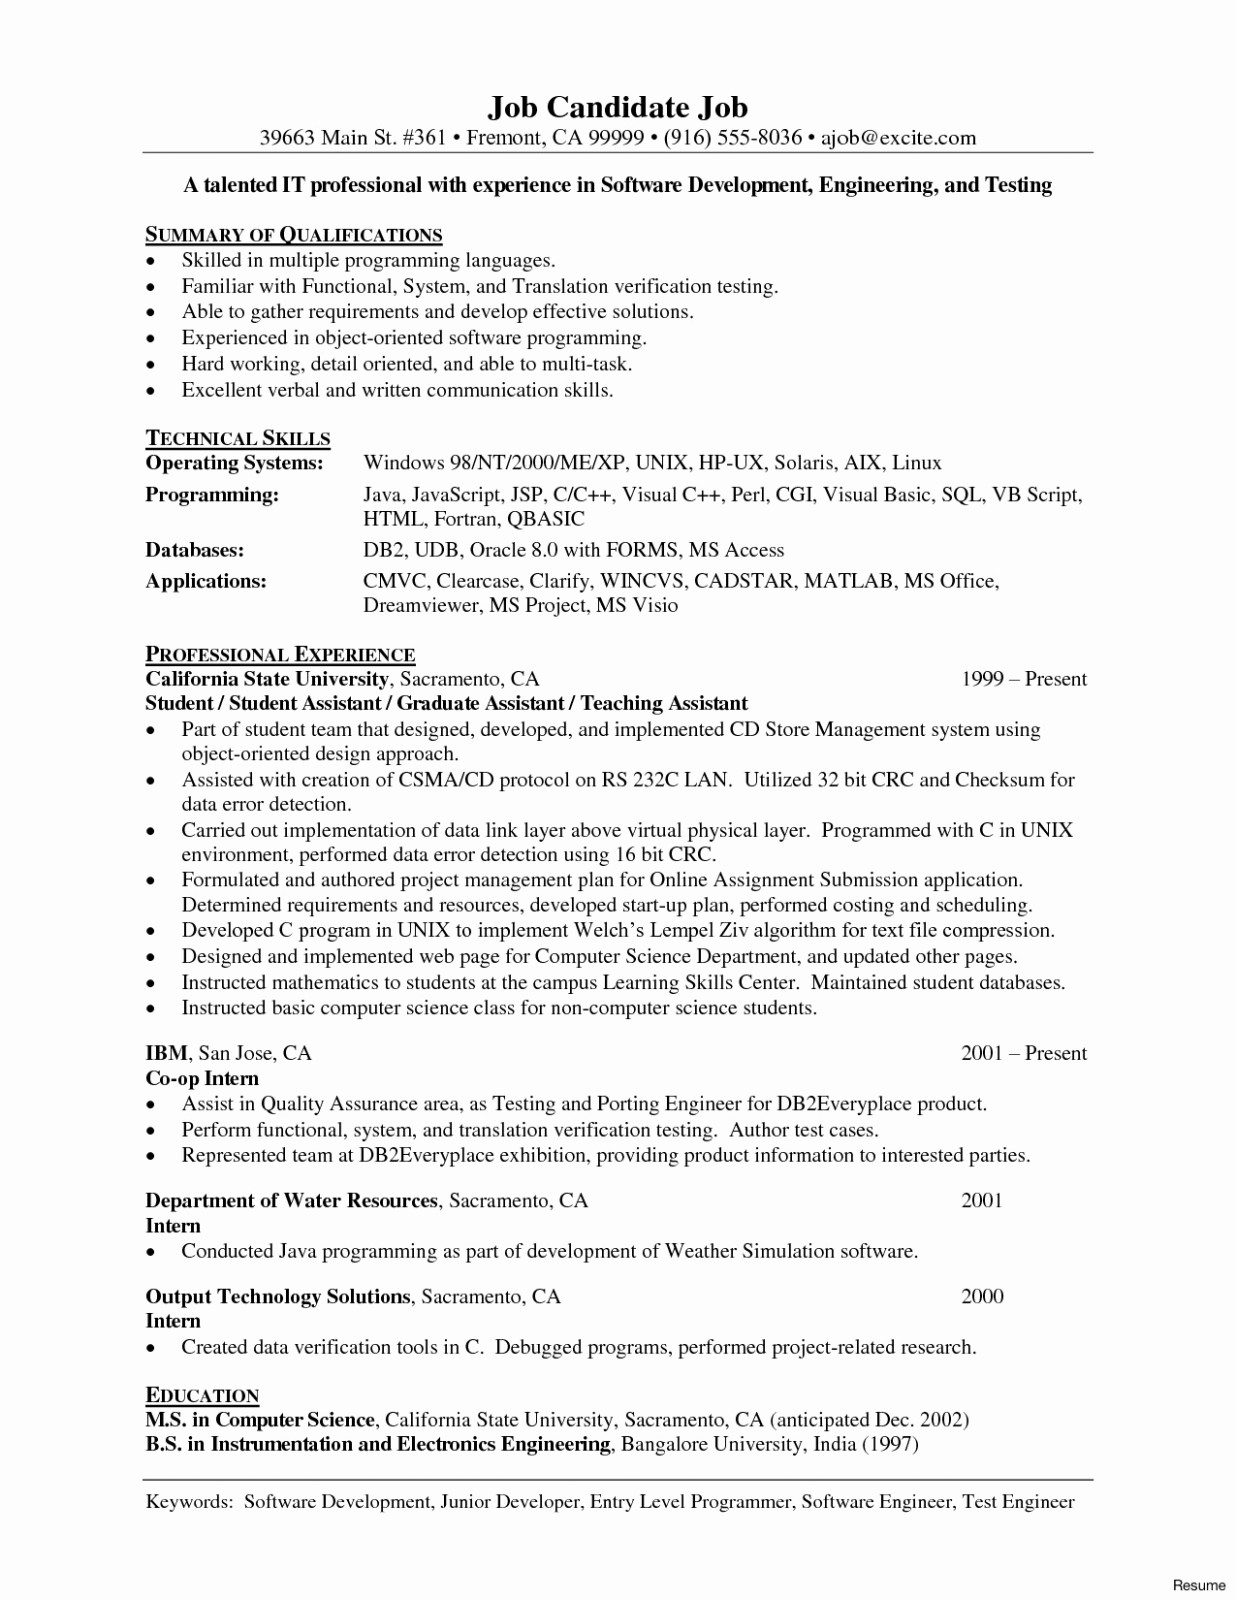 Engineering Resume Template - Quality Engineer Resume Regular Programmer Resume Template Lovely